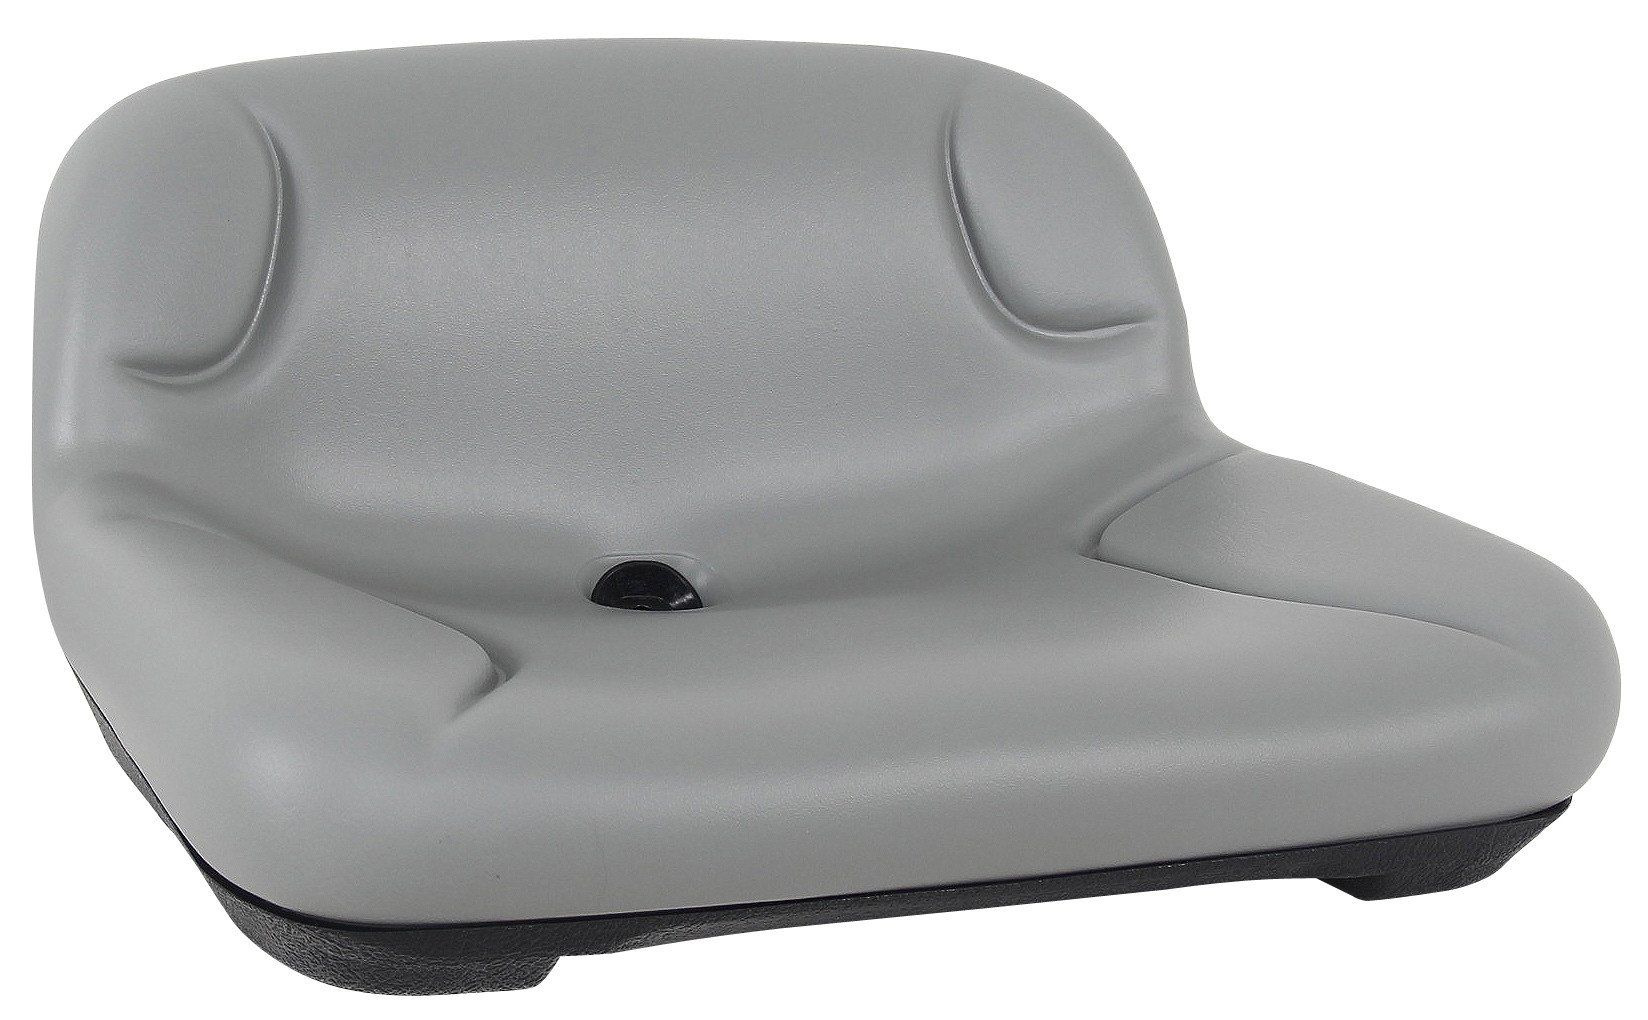 Low-Back Padded Drain Hole Seat